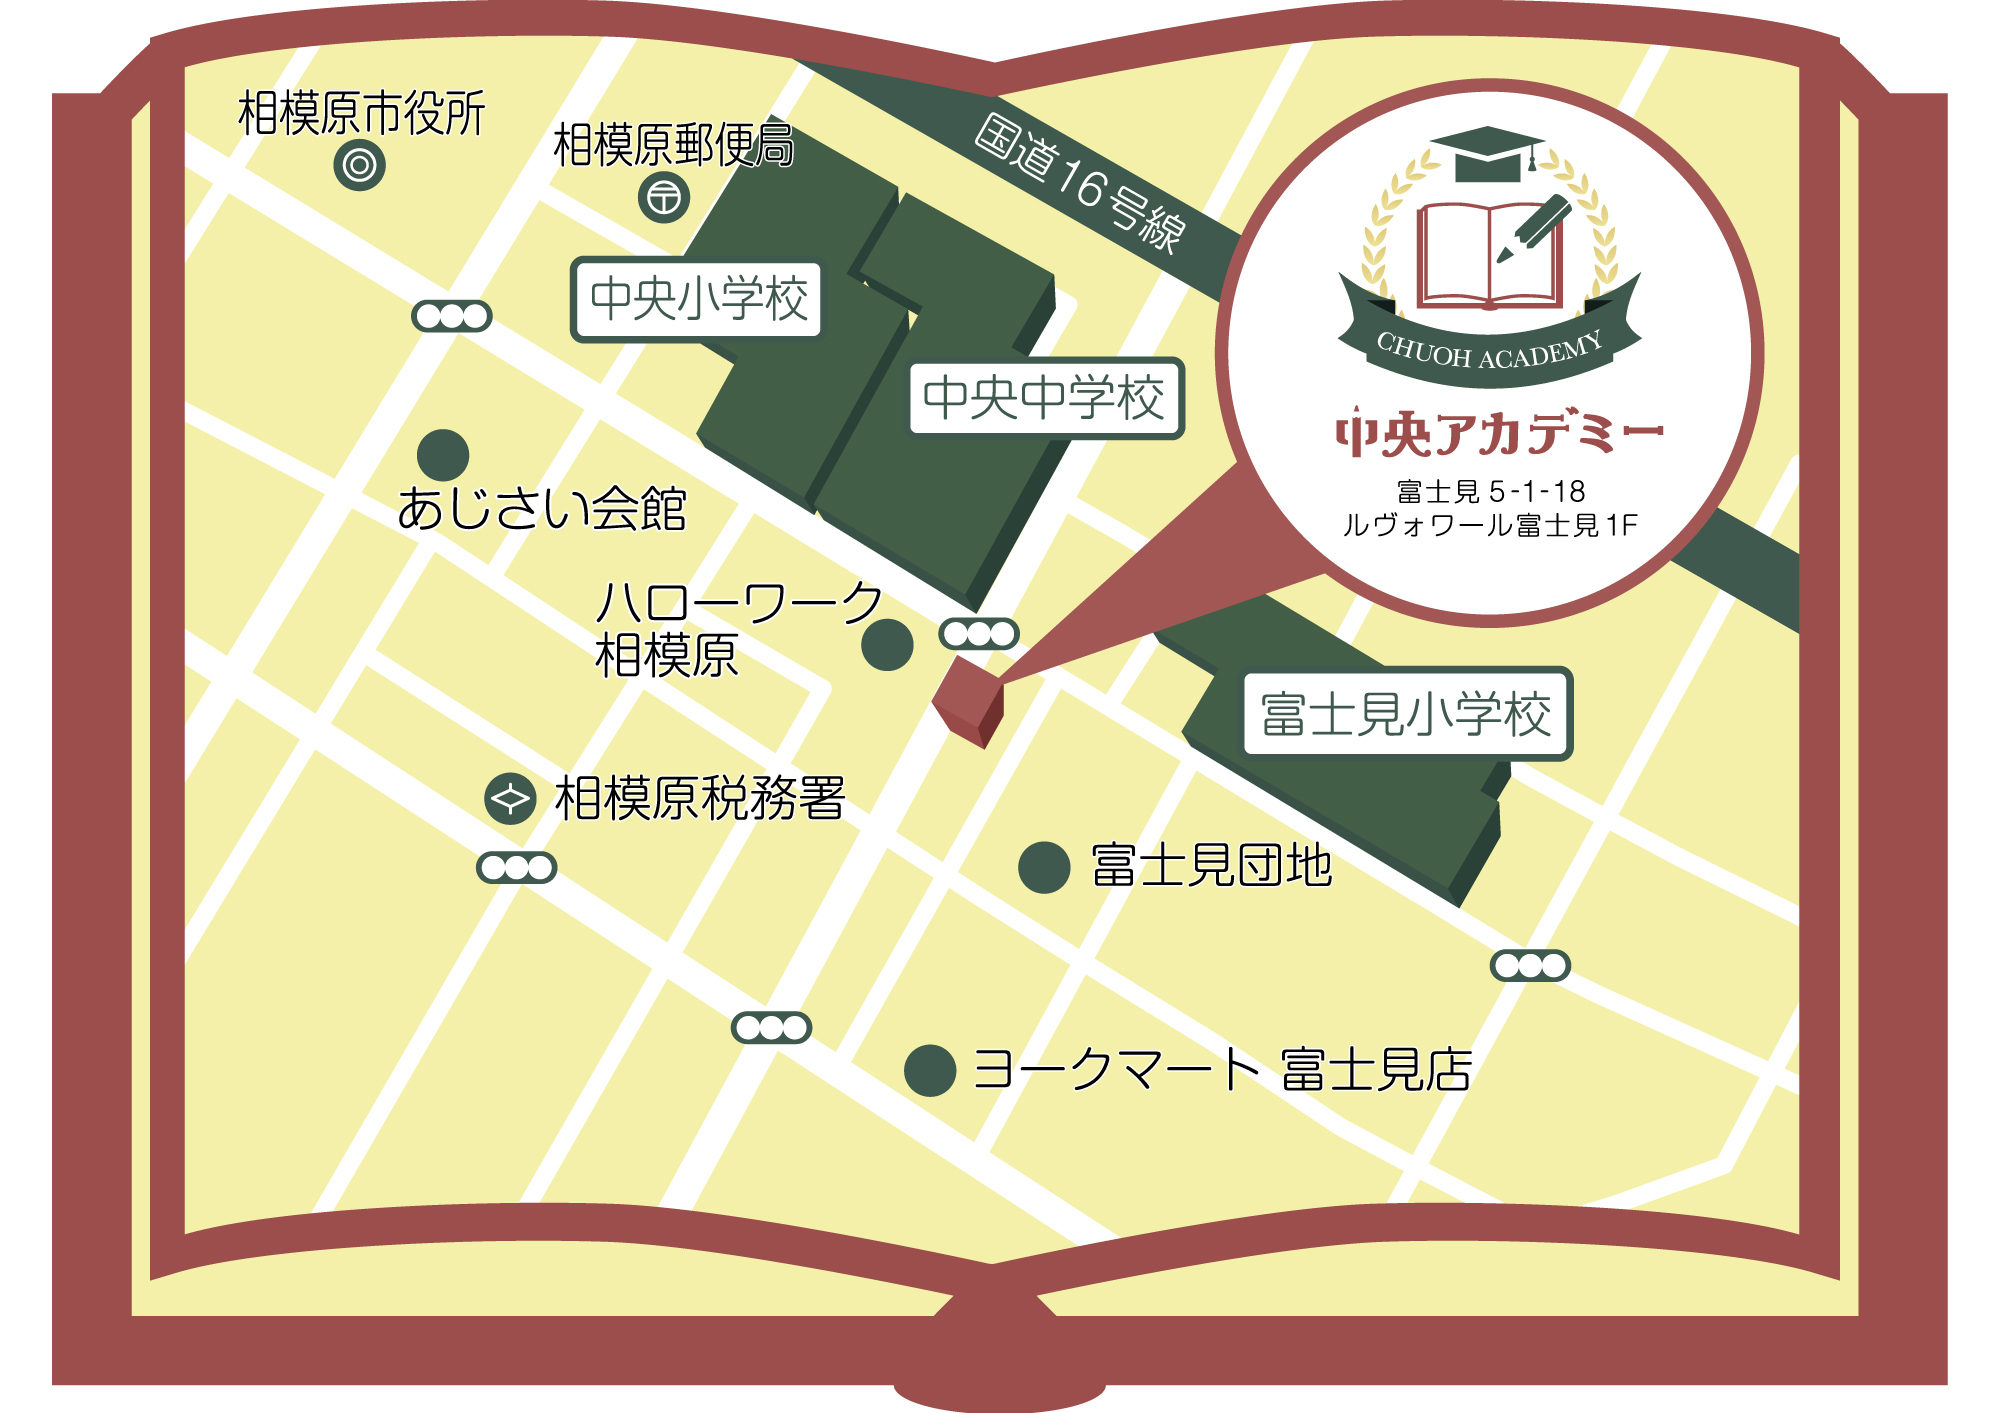 chuouacademy_map